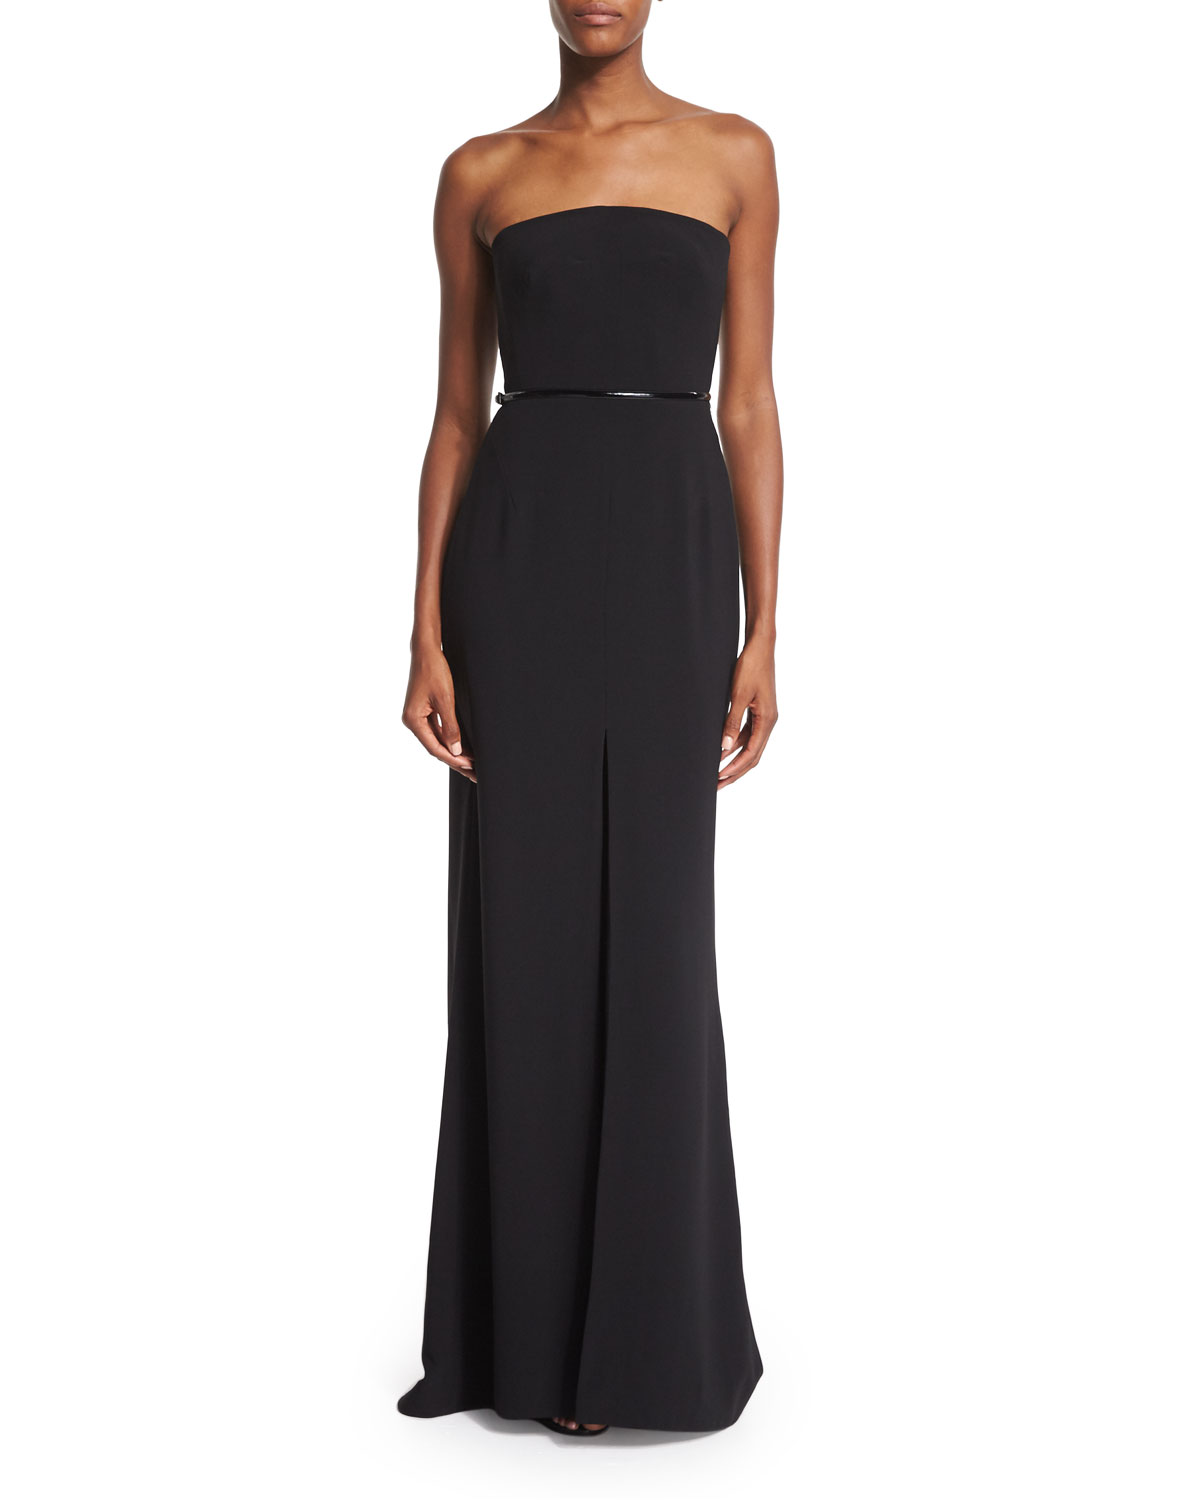 Black Strapless Column Dress